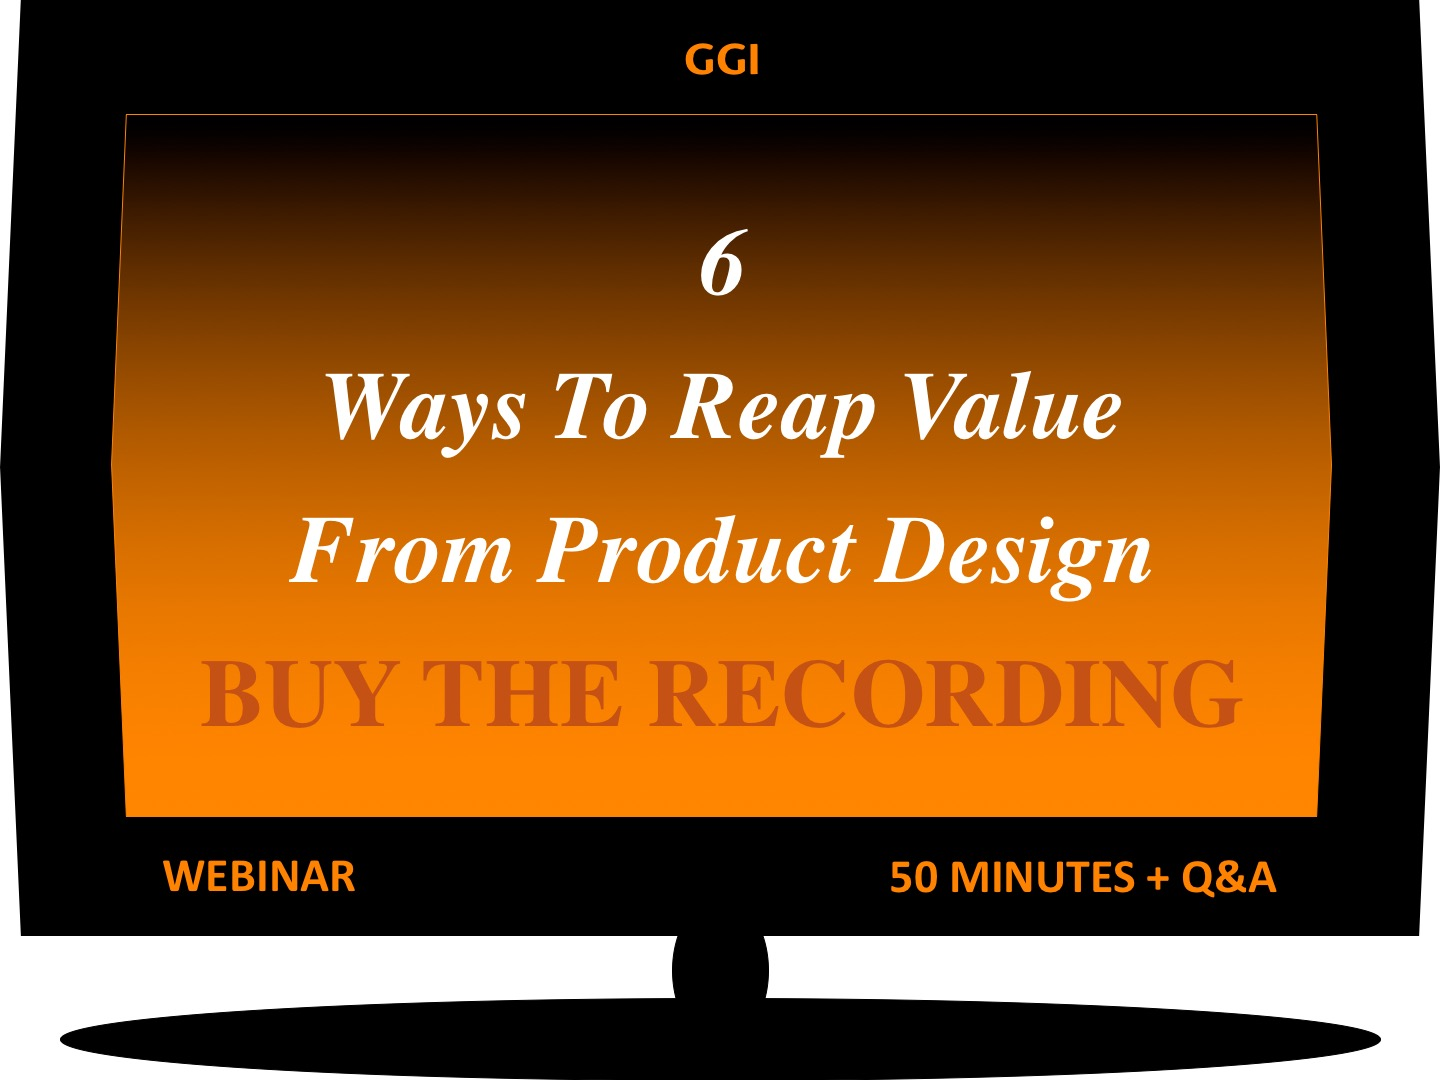 6 Ways To Reap Value From Product Design